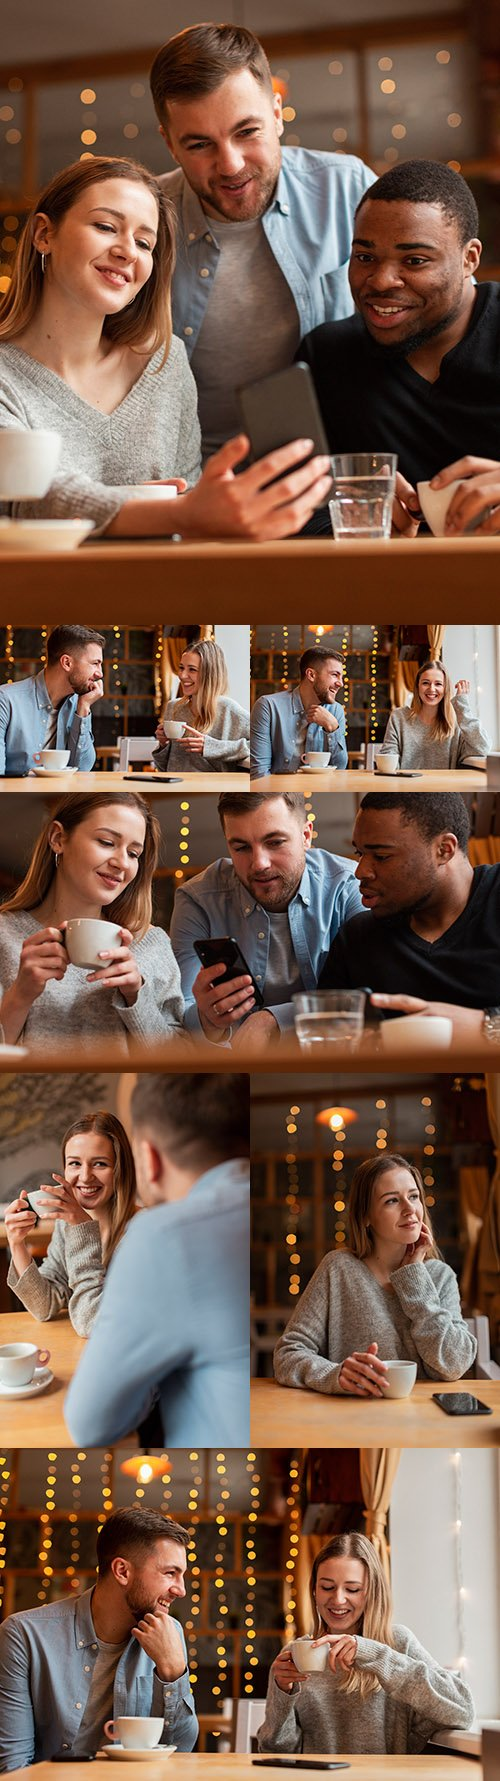 Young friends at restaurant table take selfies